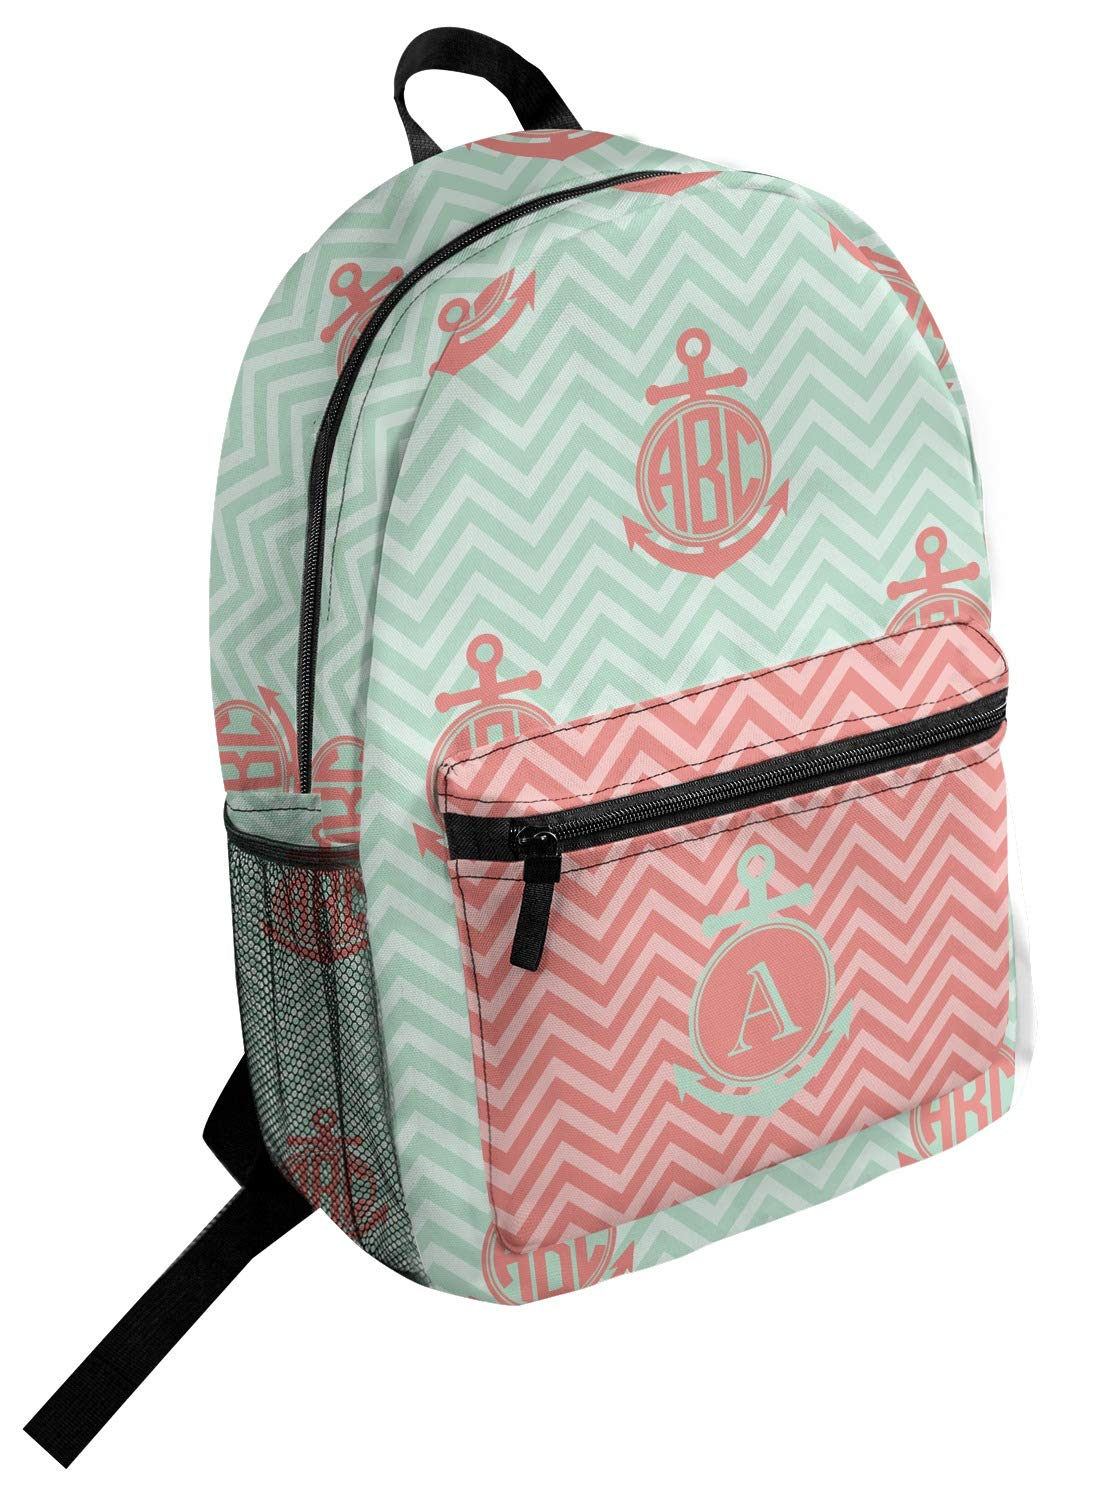 Chevron /& Anchor Student Backpack Personalized